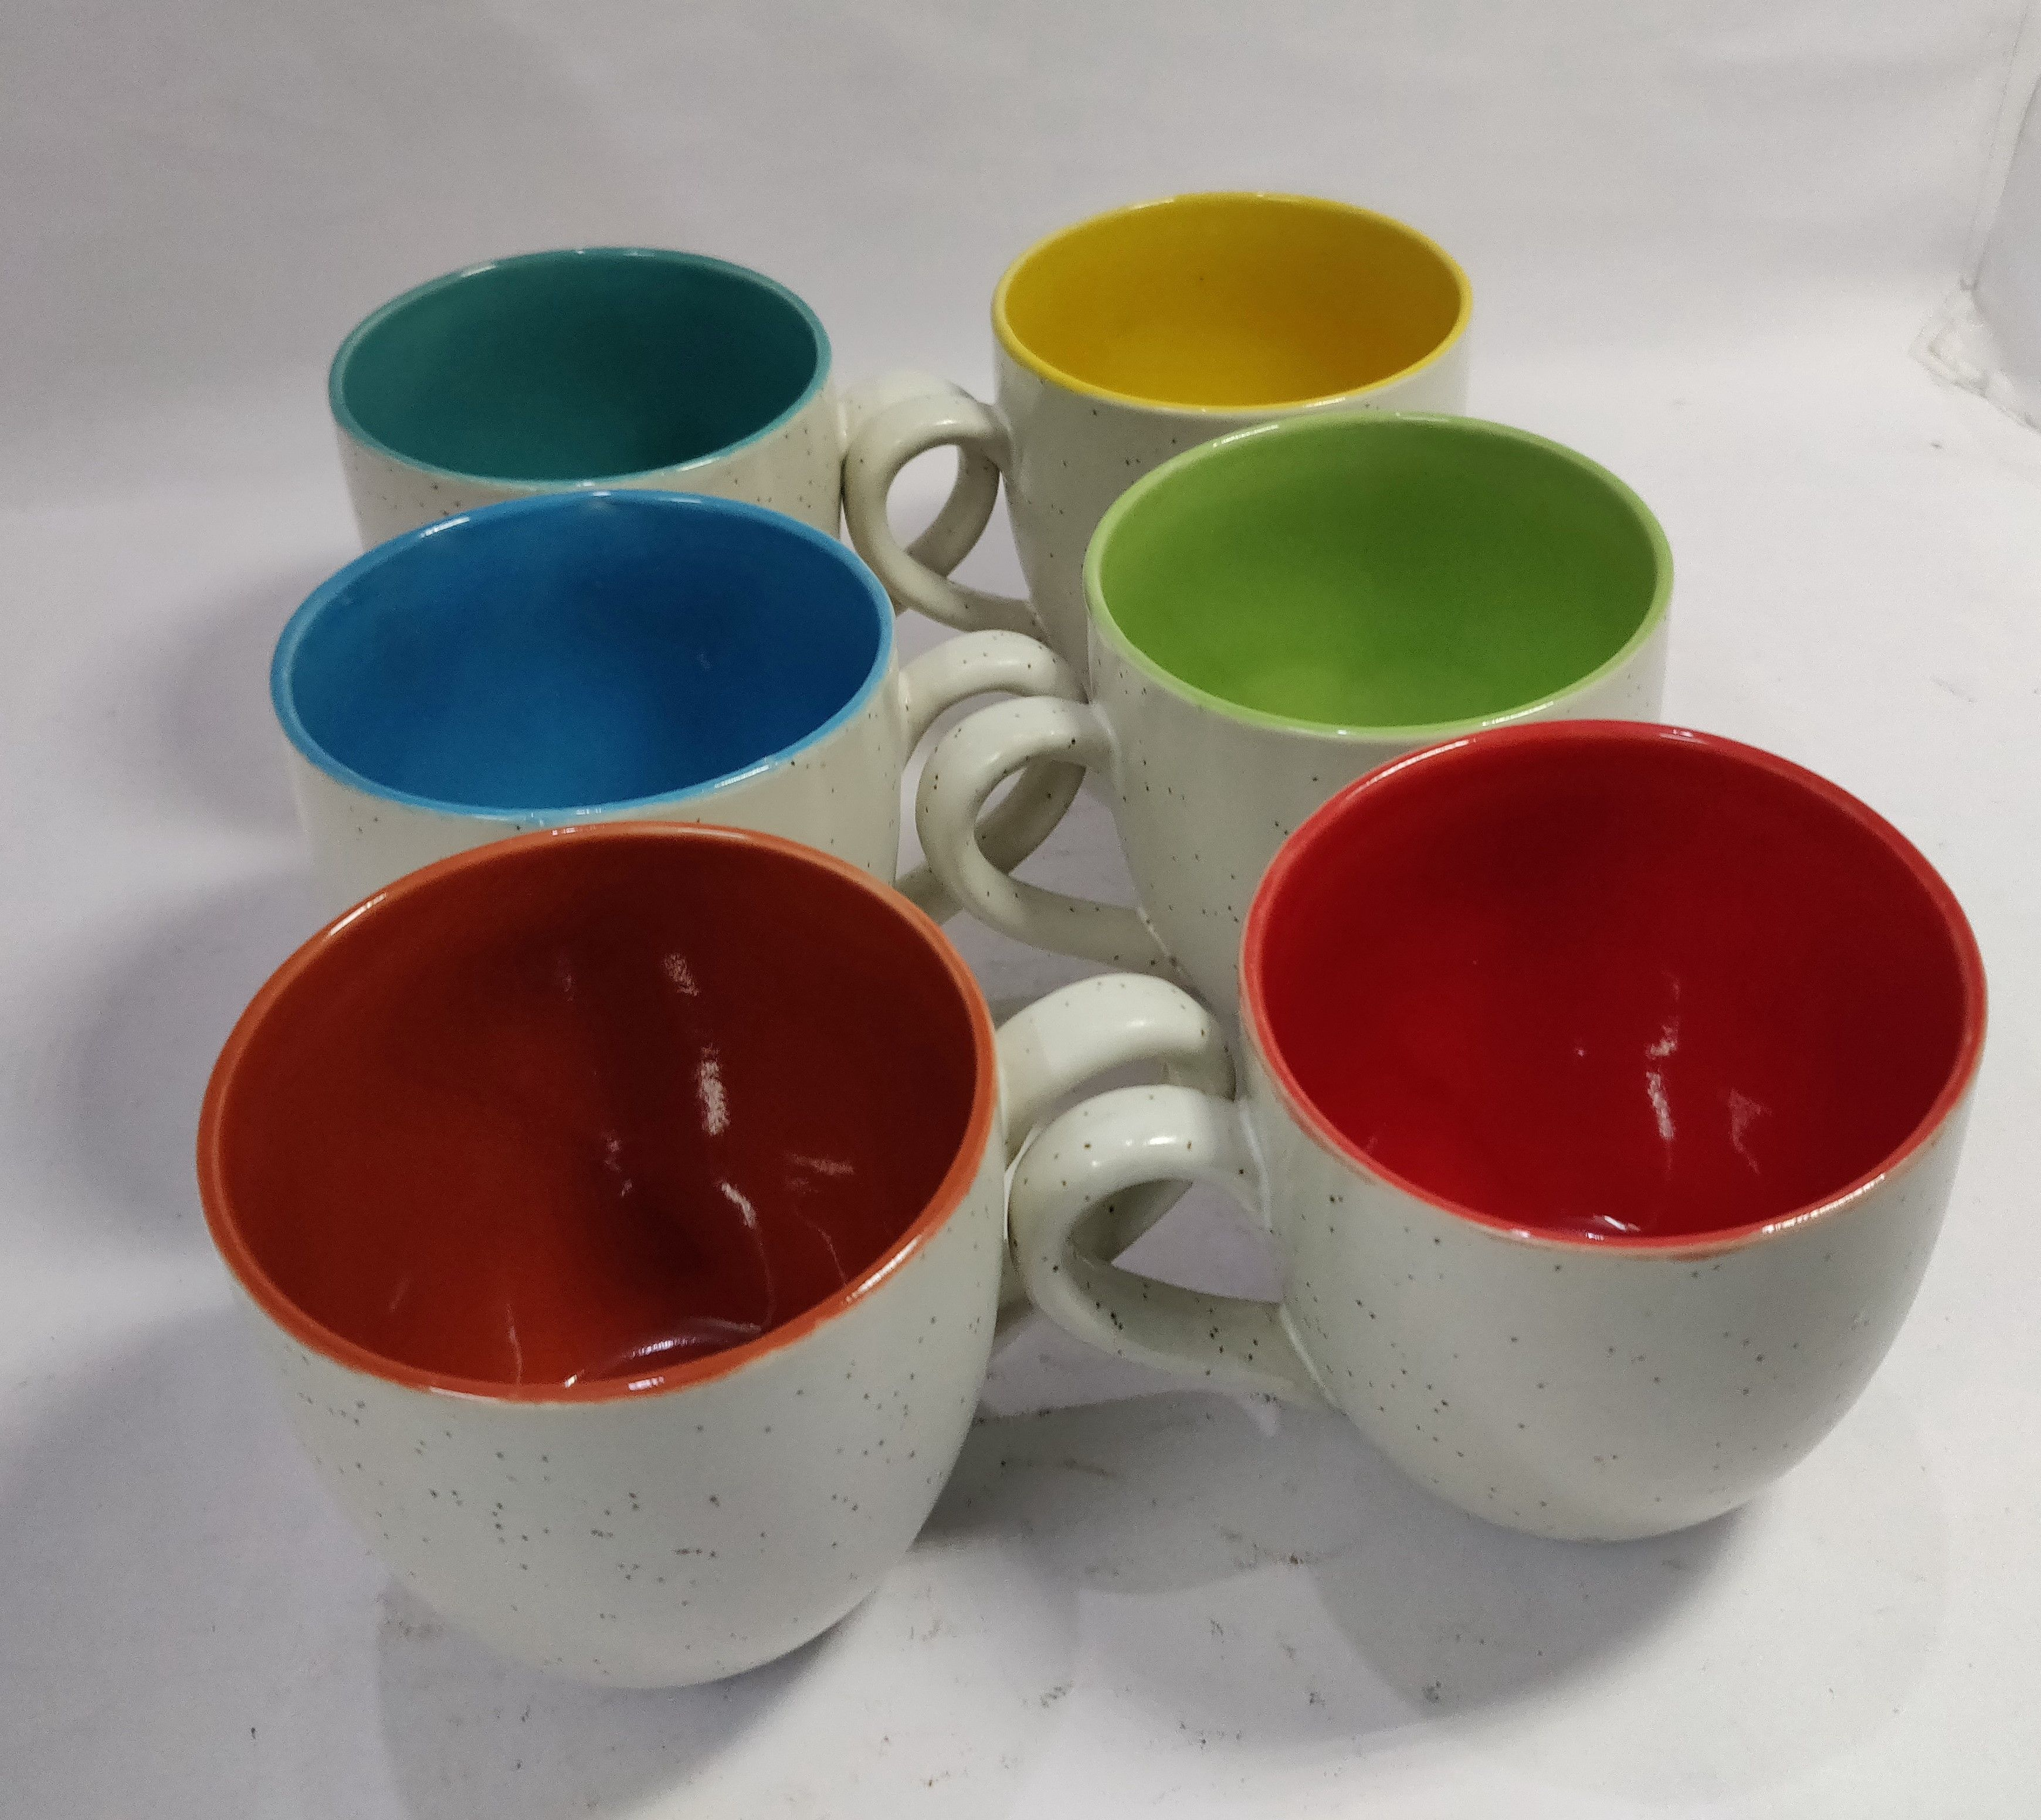 Very Attractive Ceramic Coffee Mugs Pack Of 6 Hand Made By Artisans Of India Mugs Coffee Mugs Fun Cup